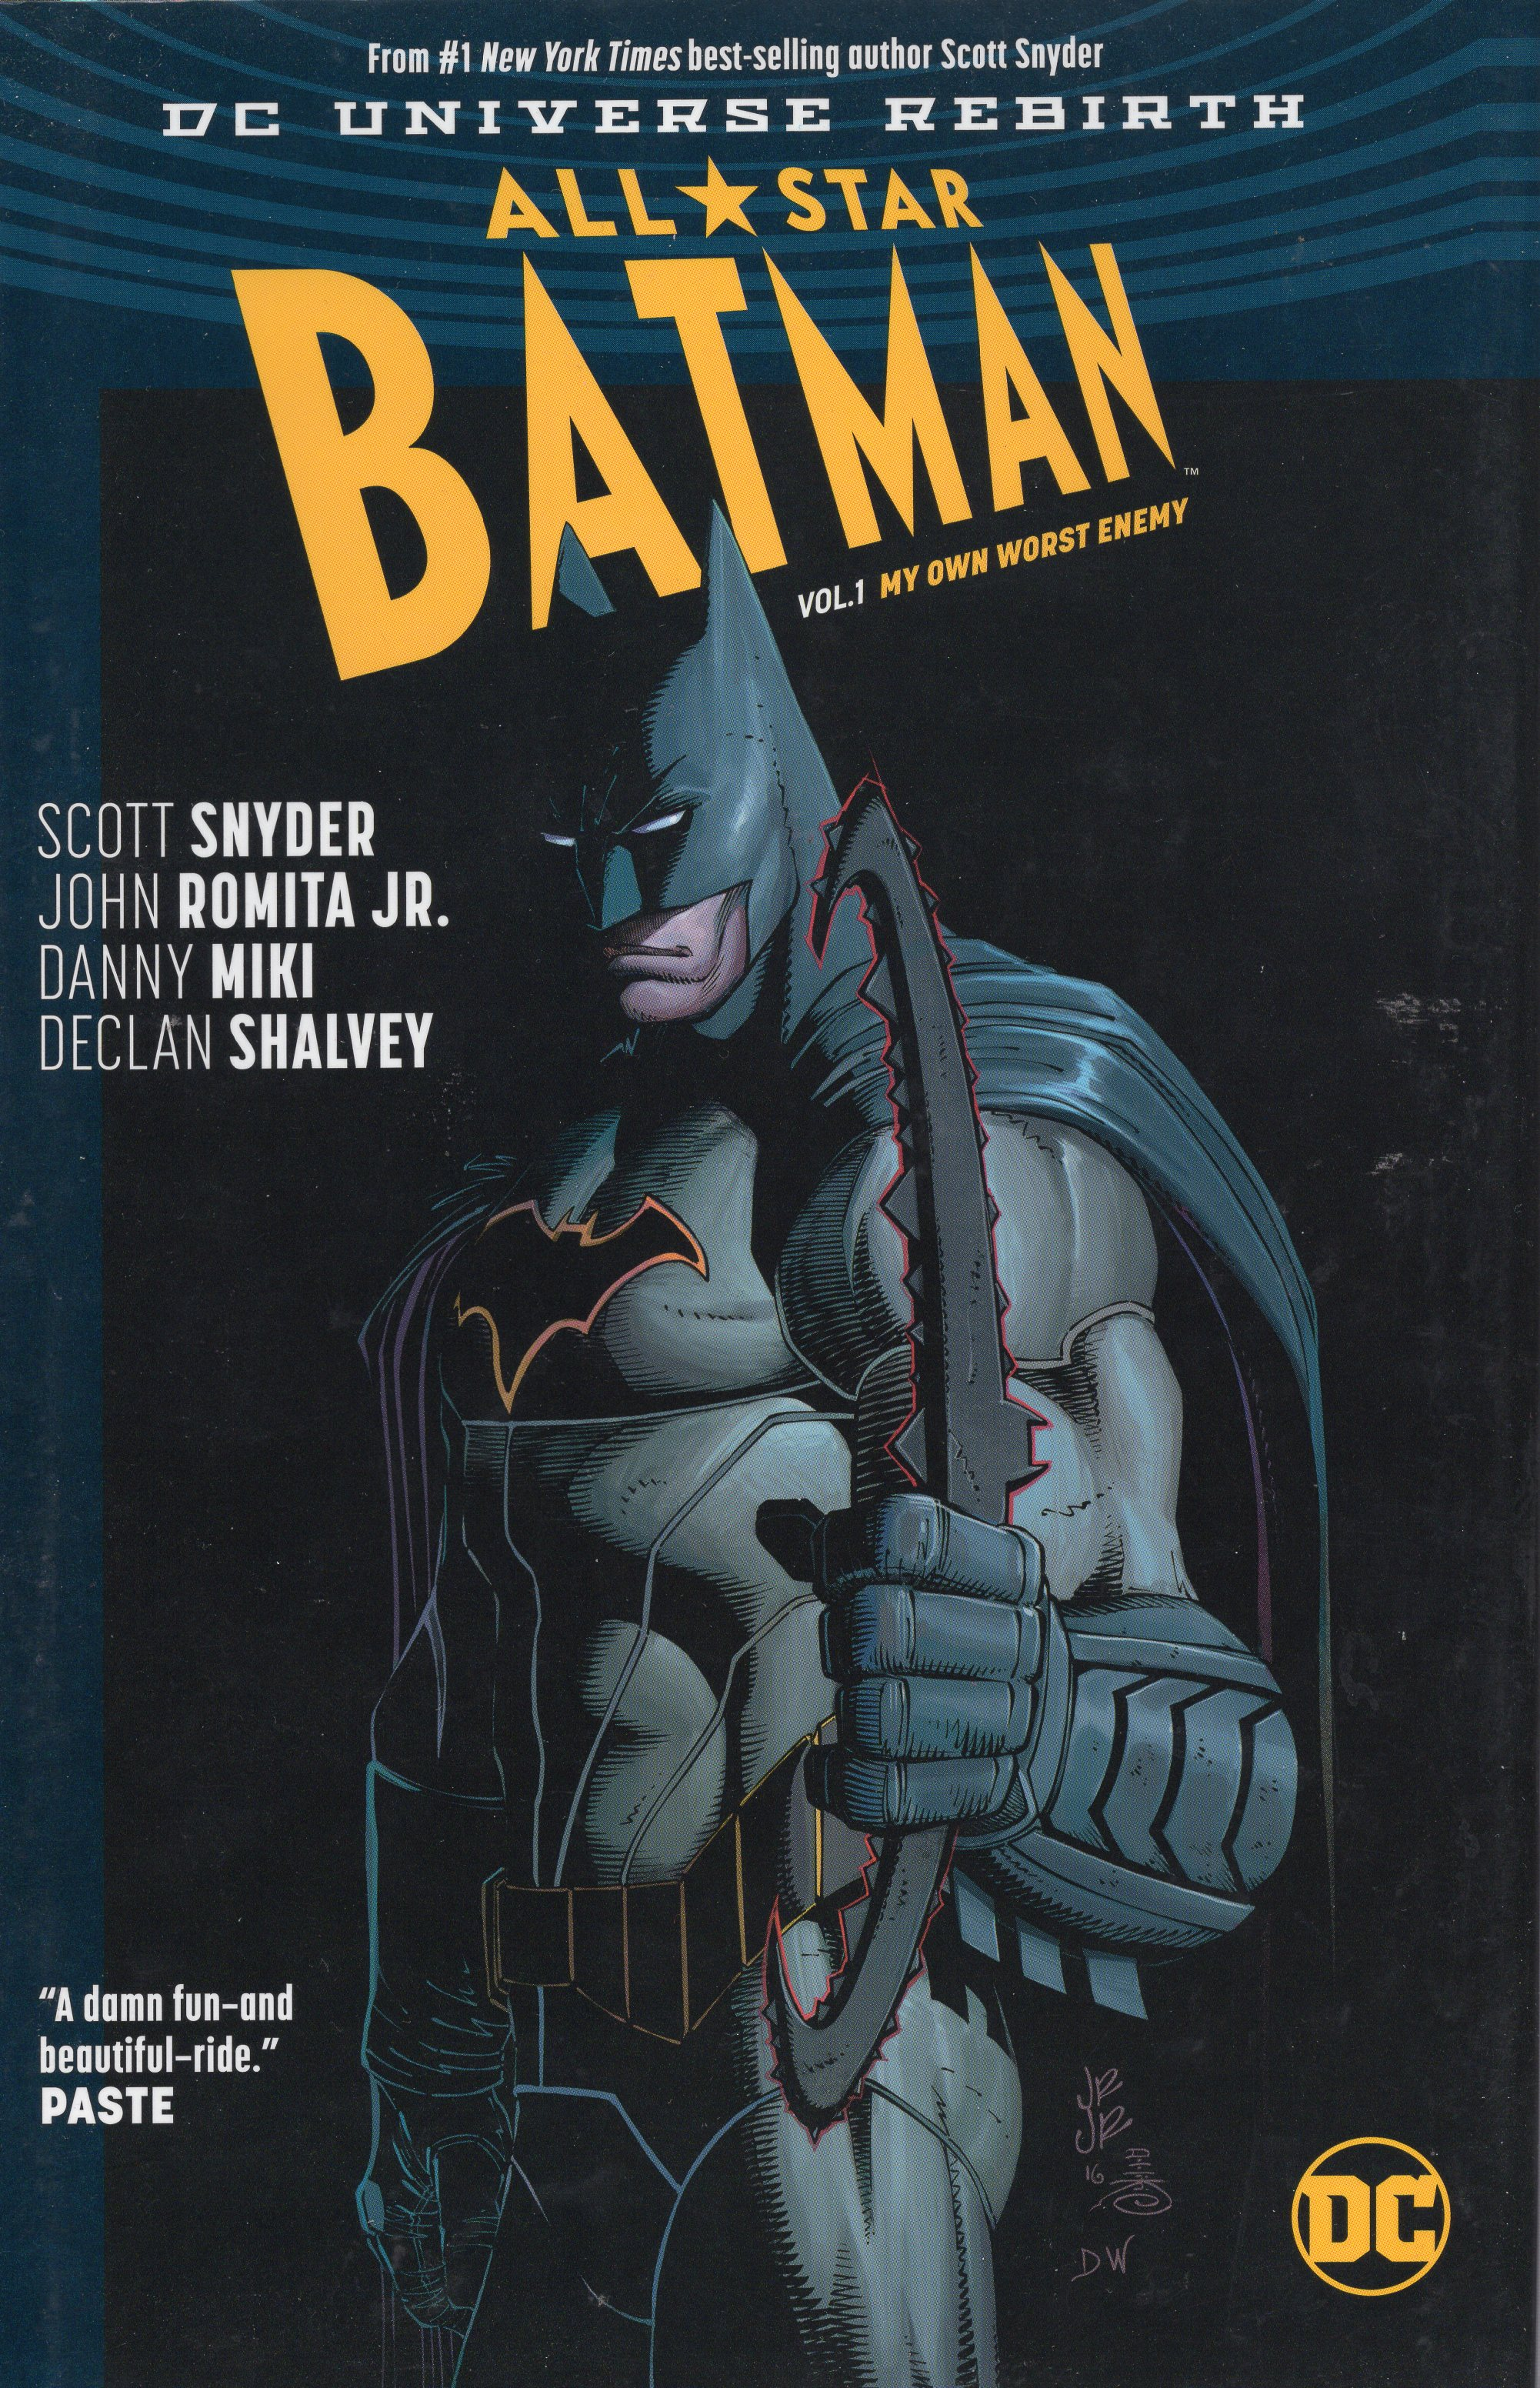 A - All Star Batman Vol 1 My Own Worst Enemy